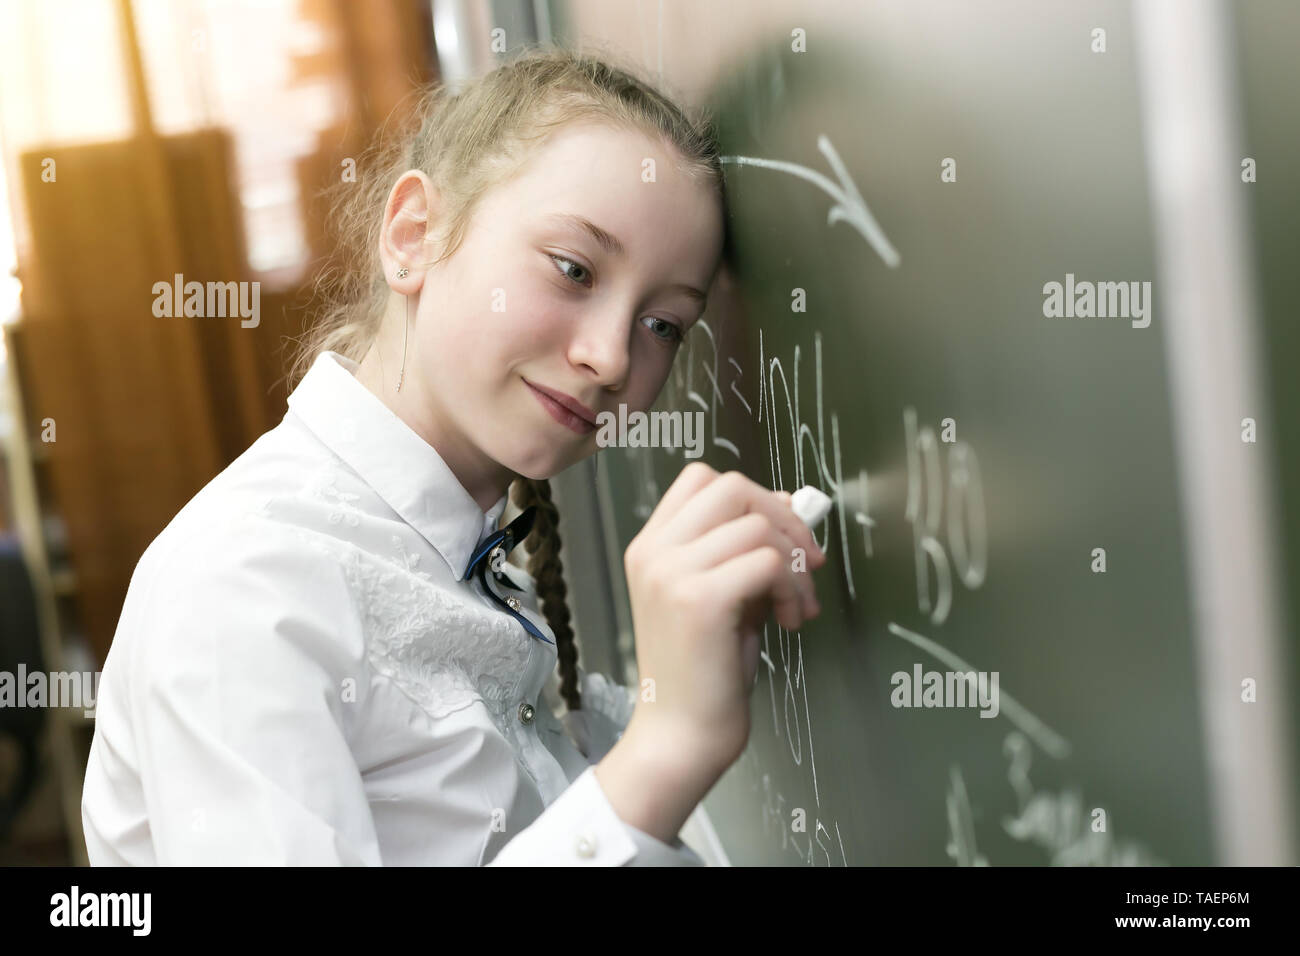 A girl schoolgirl is tired tends to sleep with fatigue, put her head on the school board. - Stock Image